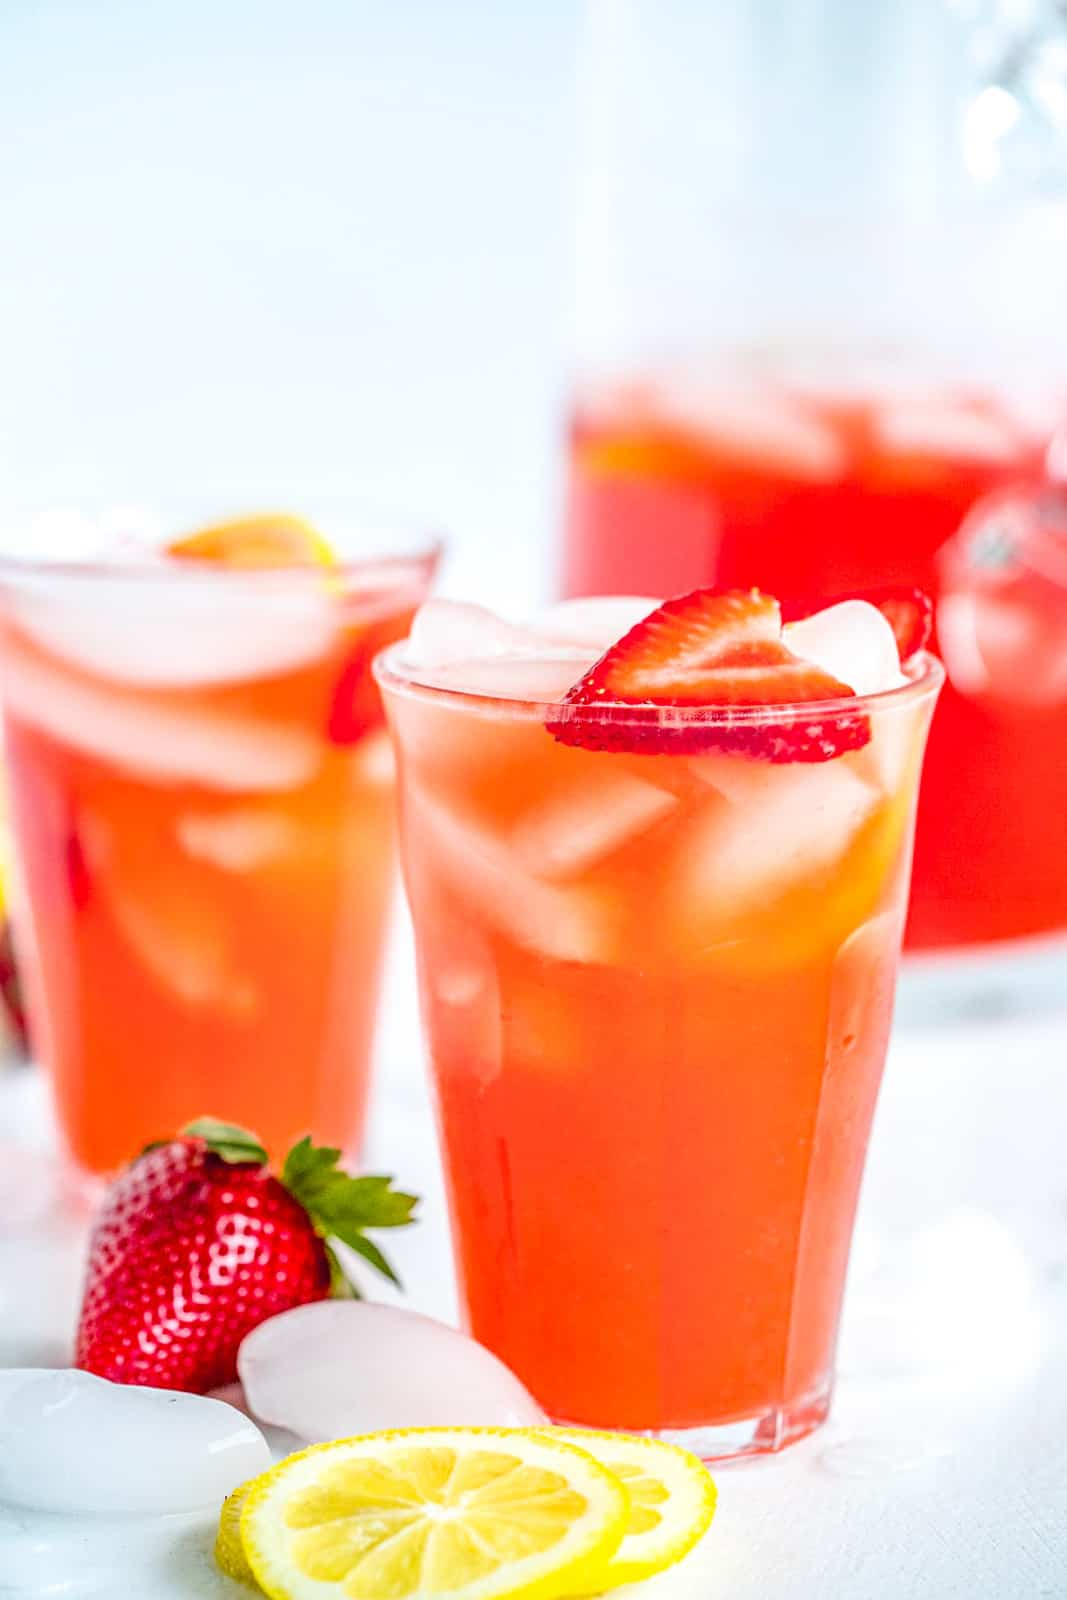 Close up of two classes of Strawberry lemonade garnish with strawberries and lemons